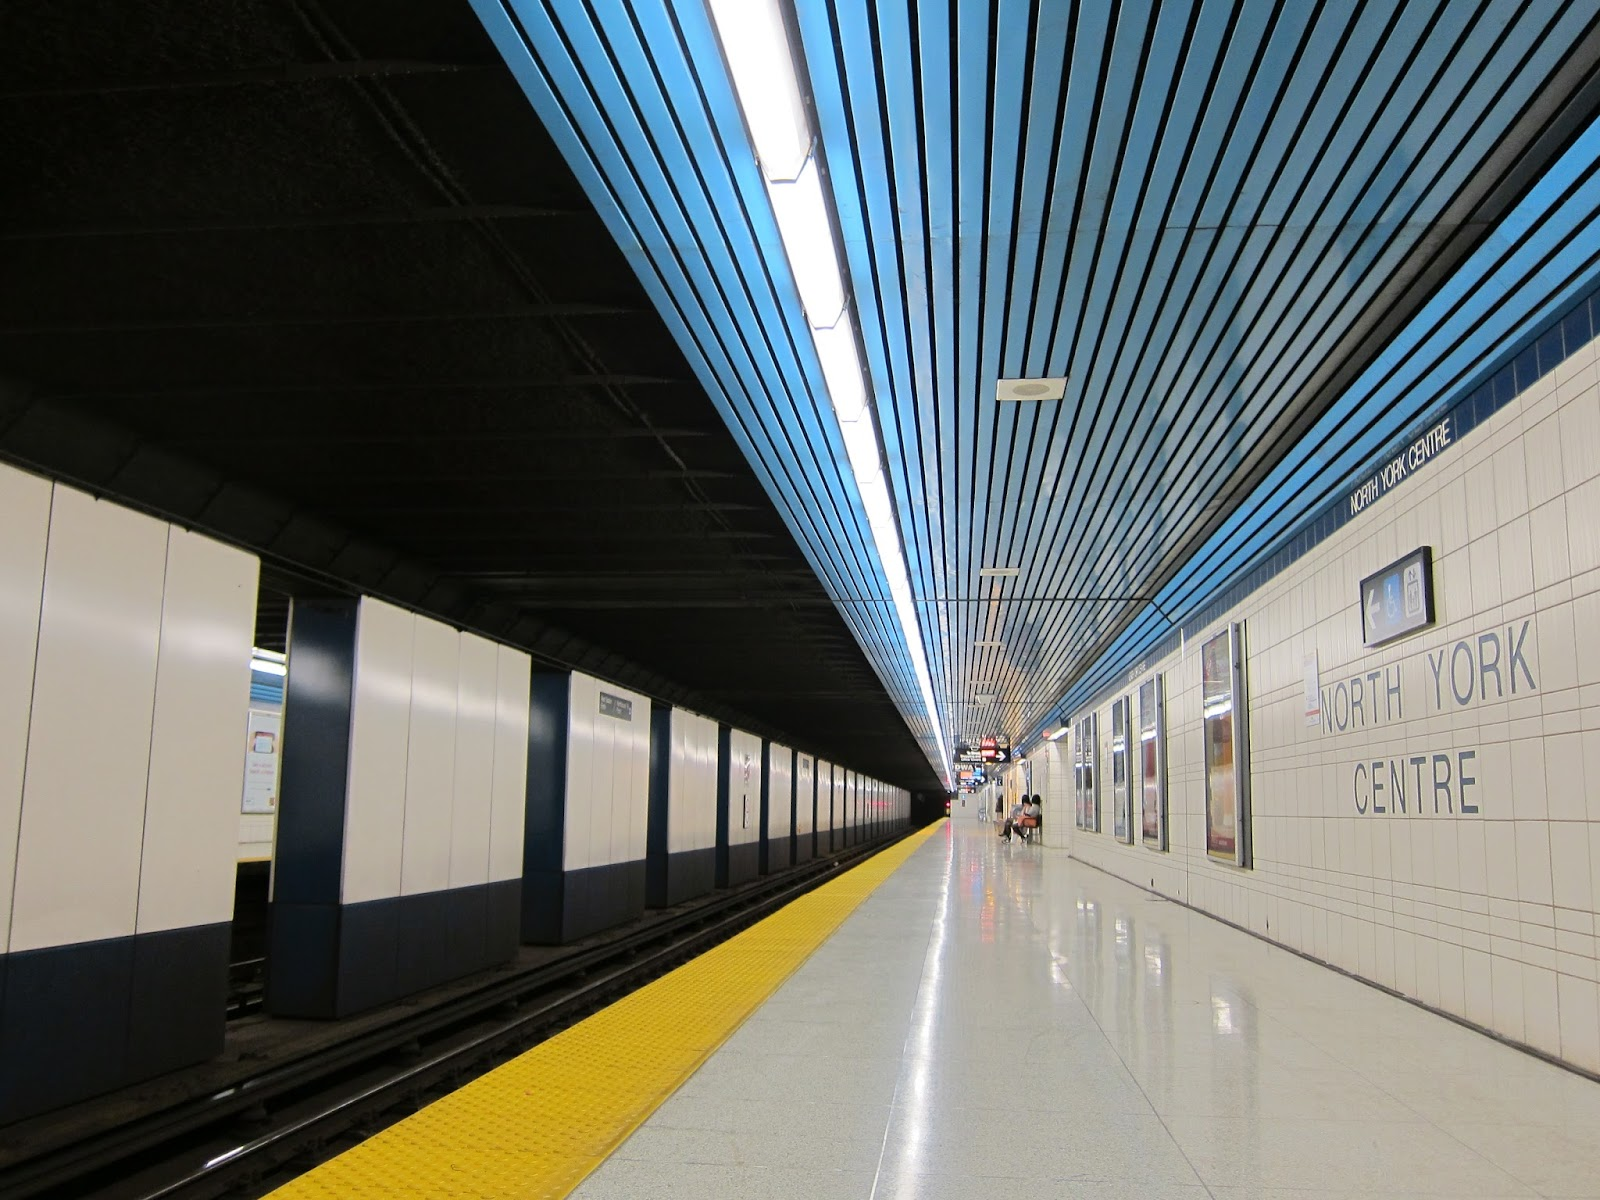 North York Centre subway platform view